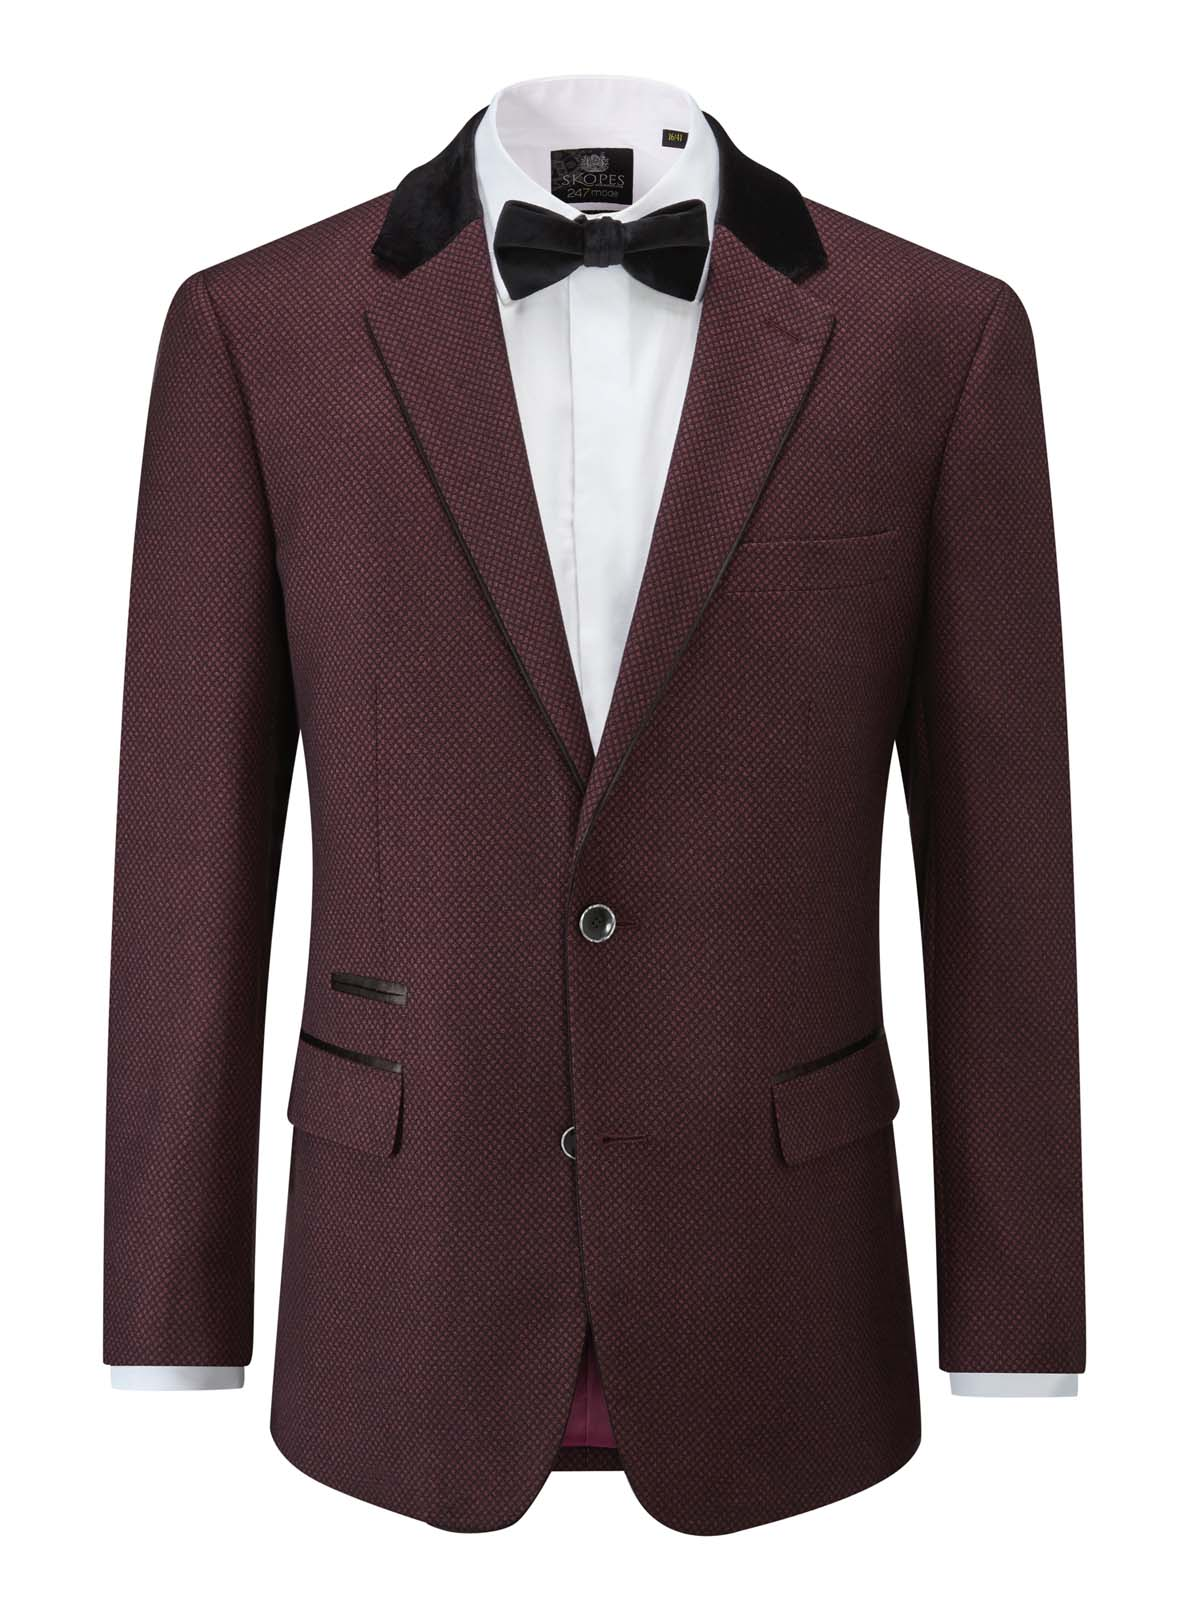 91b5f28a43b Image for Skopes Shoreditch Jacket – Plum up to 72